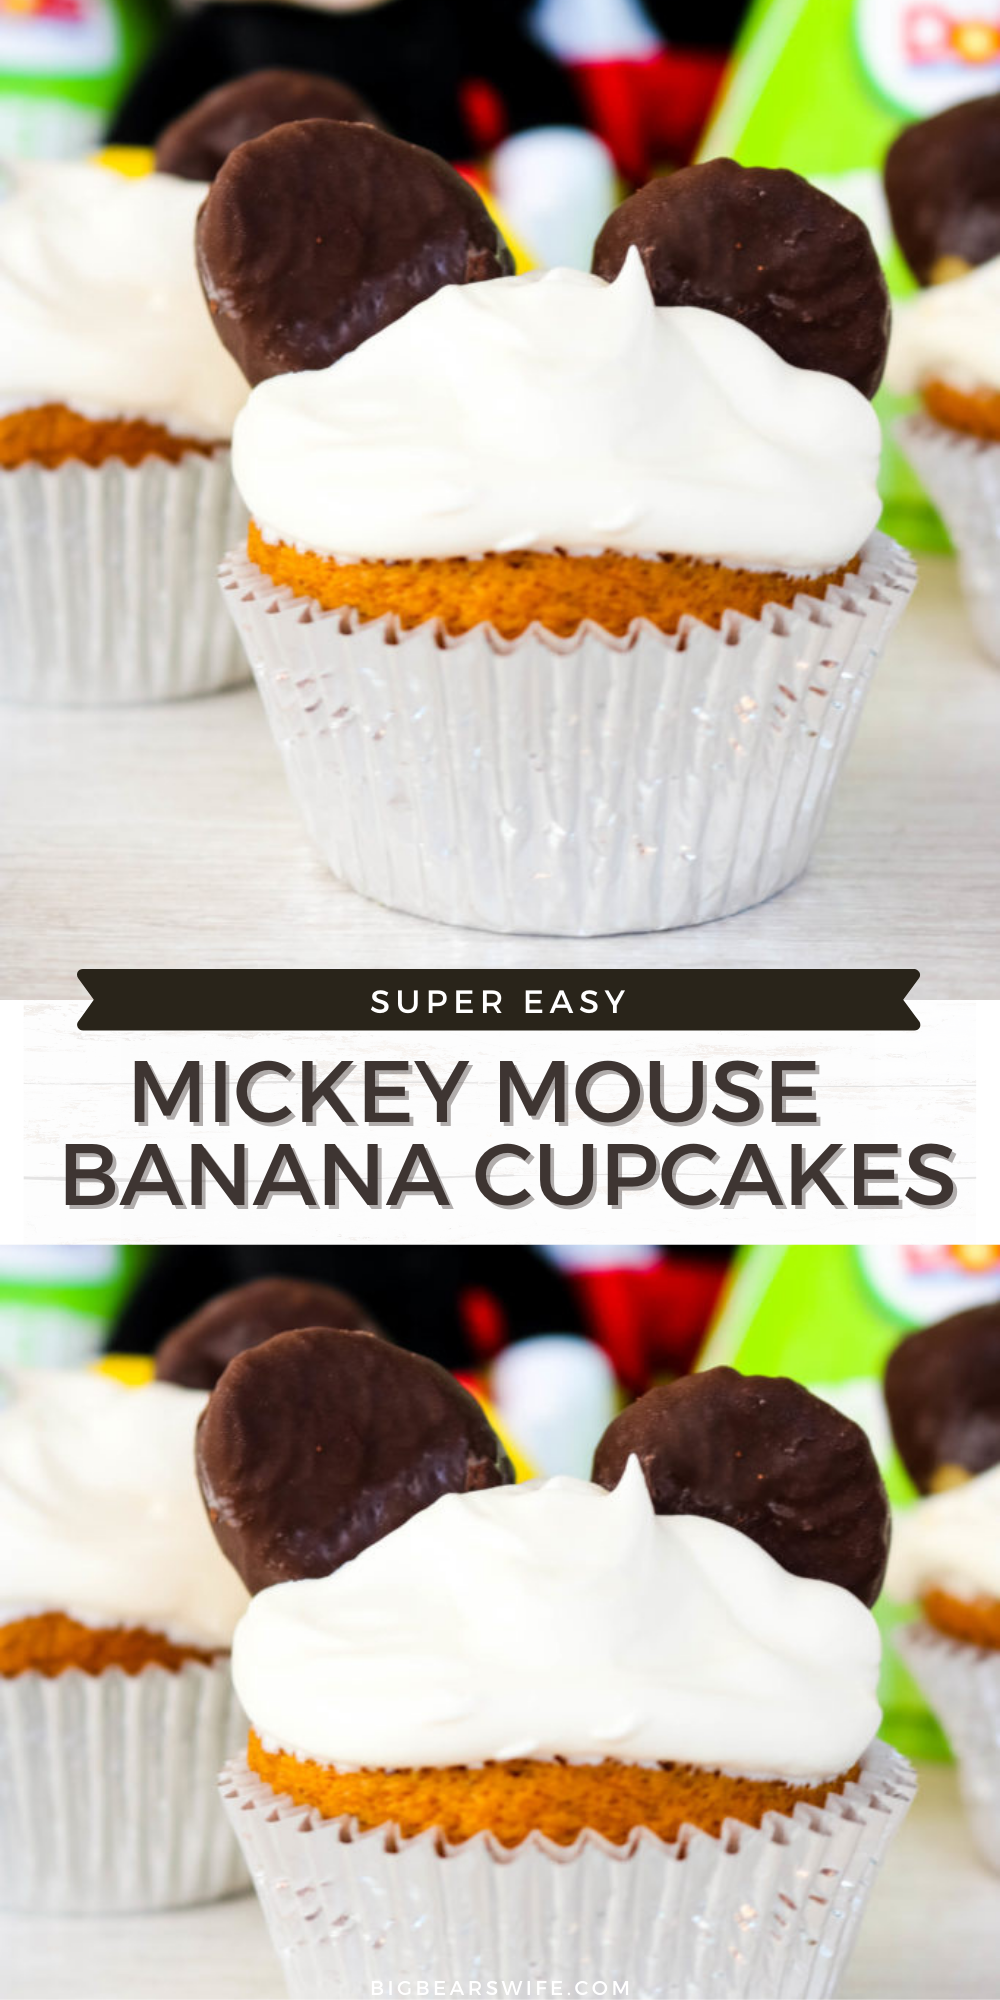 Mickey Mouse is turning 90 and it's time to celebrate his birthday with these Mickey Mouse Birthday Banana Cupcakes  #Mickey90 #MickeyTrueOriginal #Disney #Dole #DoleHero via @bigbearswife